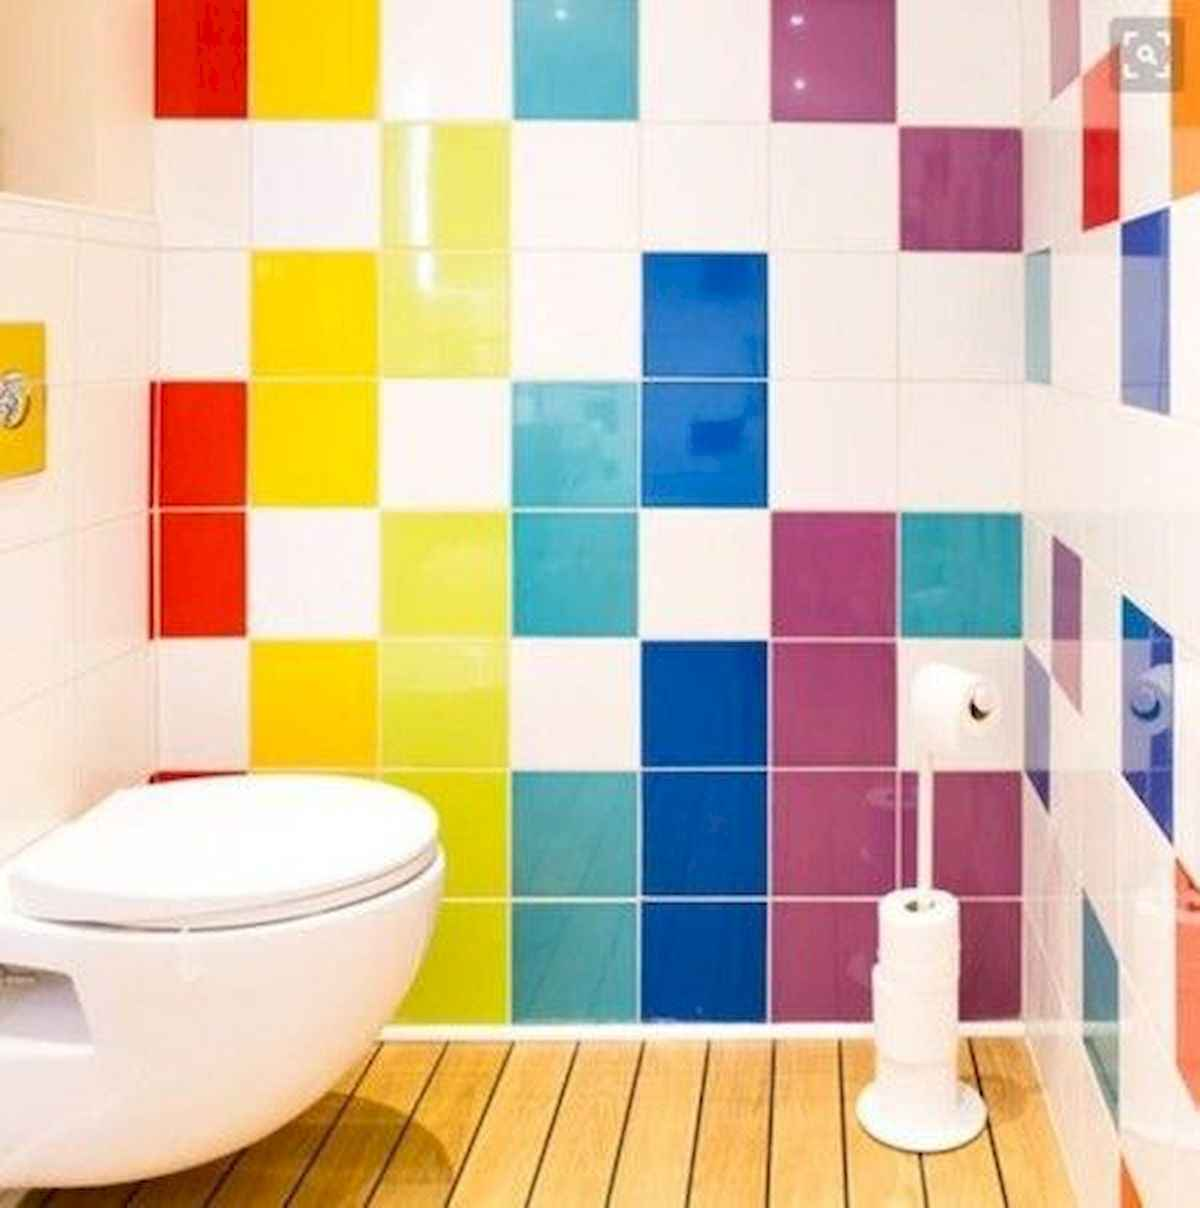 Cool Bathroom Decor: 70+ Cool Colorful Bathroom Decor Ideas And Remodel For